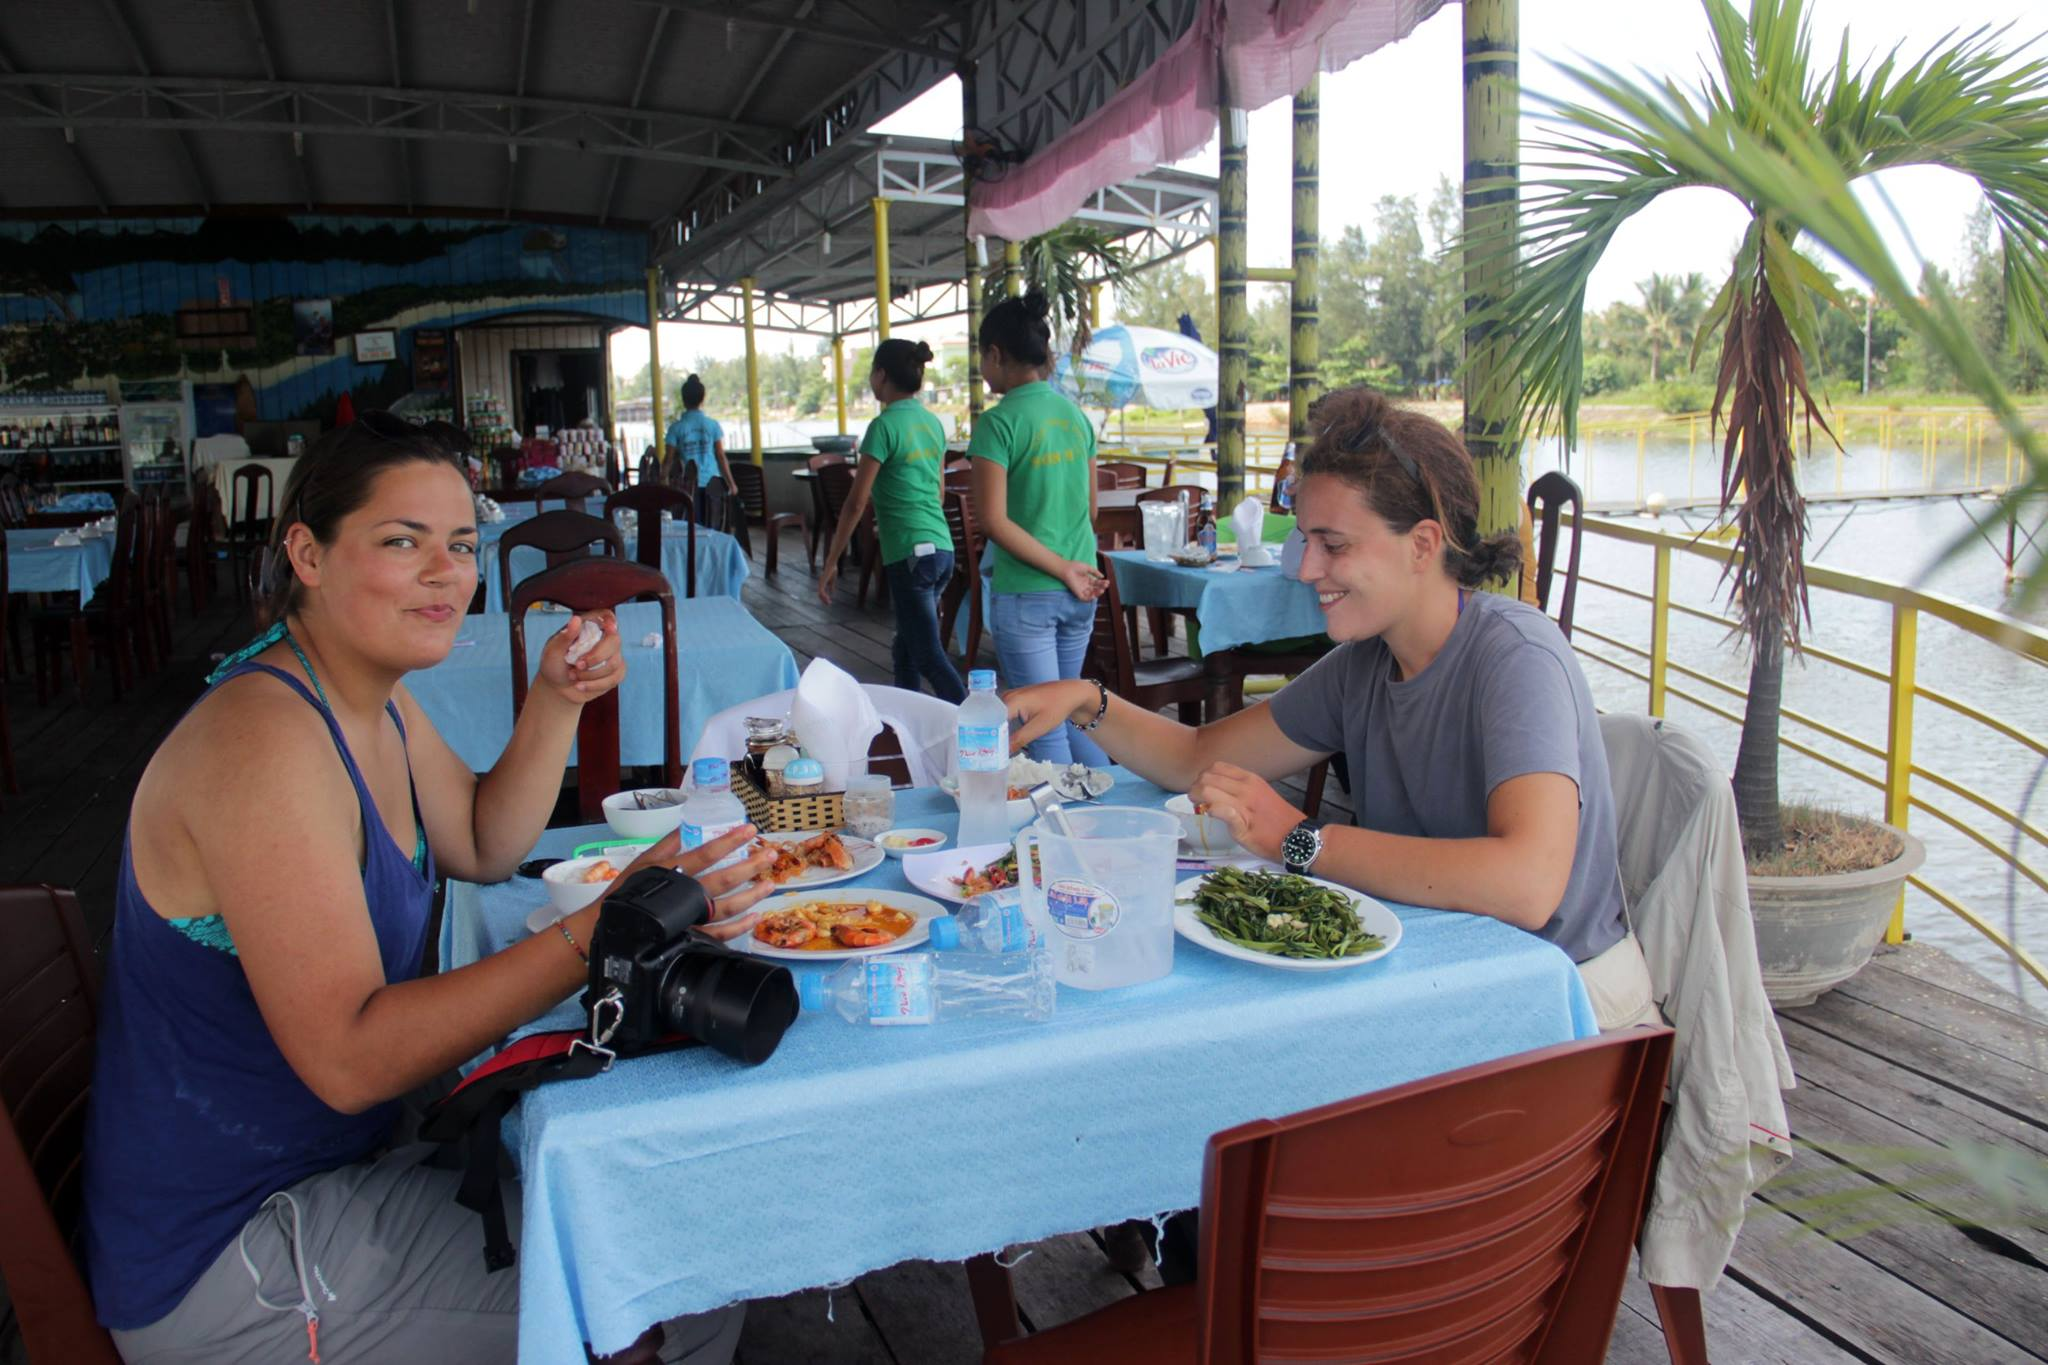 Us enjoying our meal -Photo courtesy of Silvia Pineschi